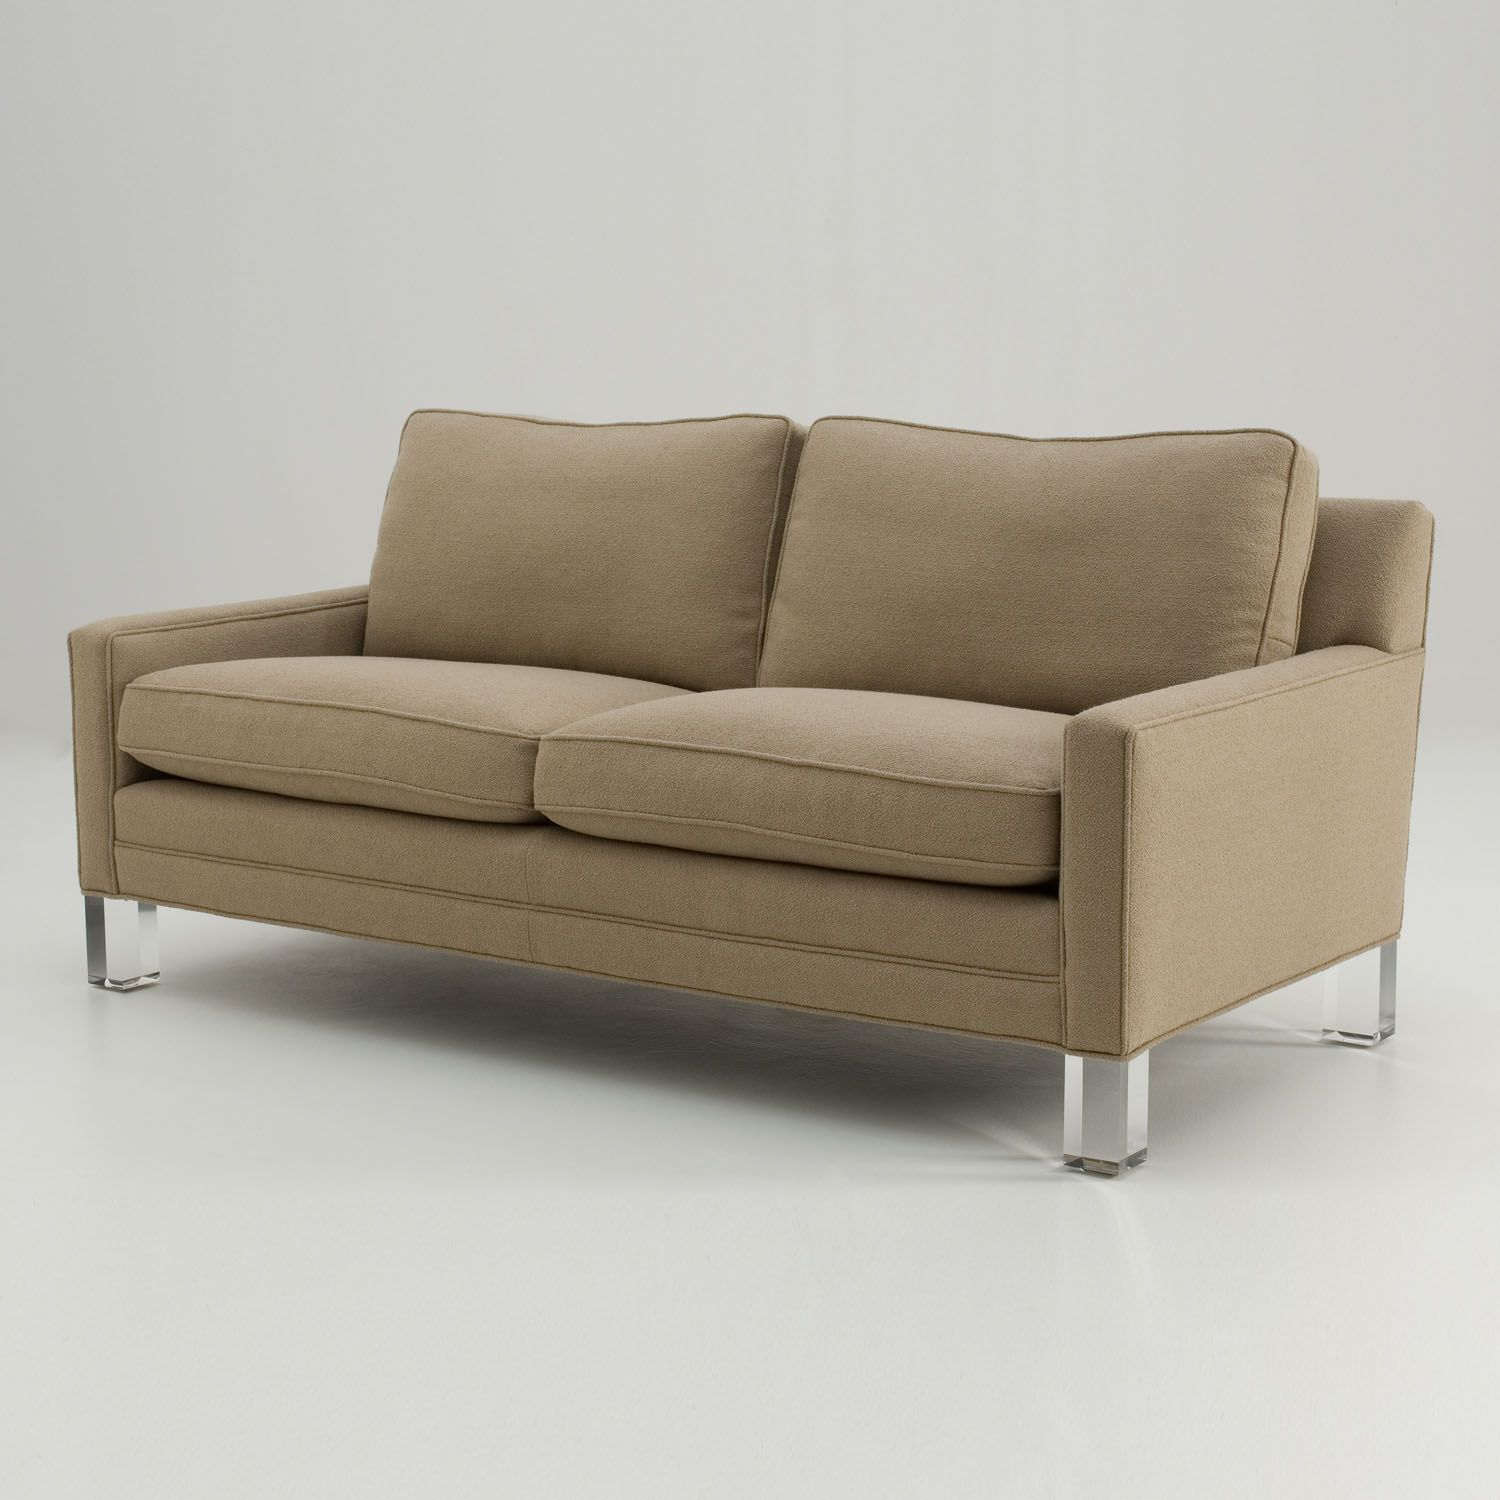 Sofas With Legs Sectional Sofas With High Legs Sofa Are Designed